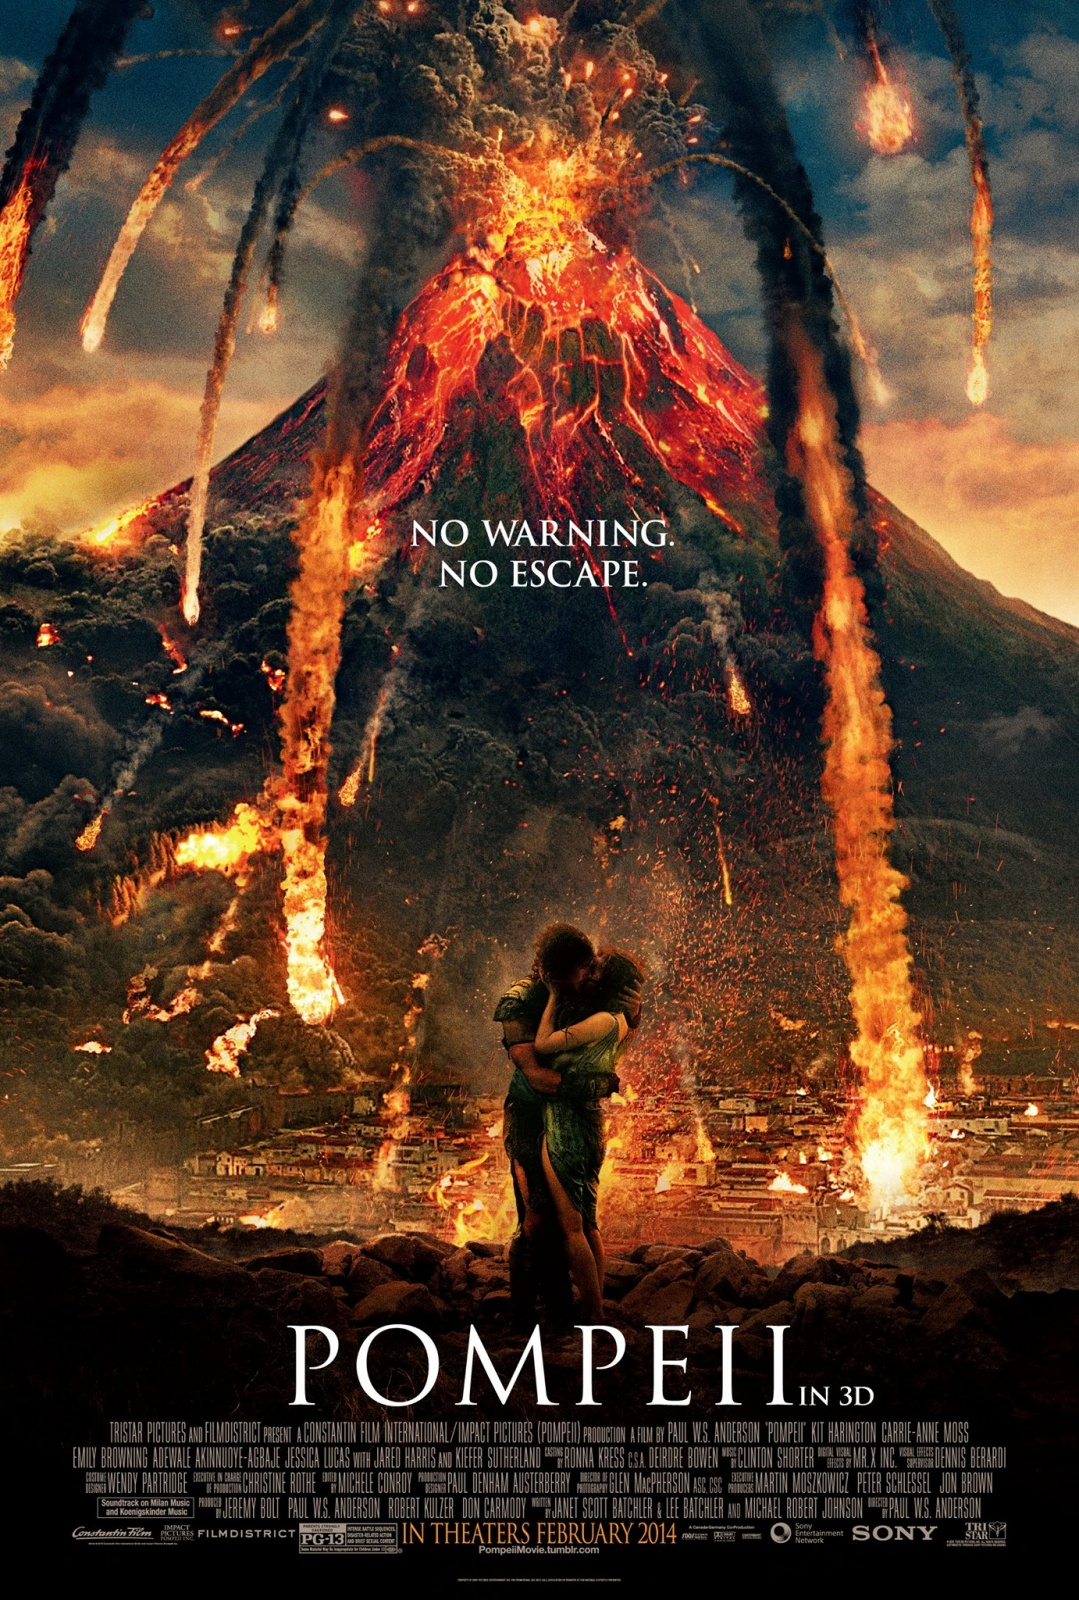 https://i0.wp.com/sideonetrackone.com/wp-content/uploads/2014/02/Pompeii-2014-Movie-Poster1.jpg